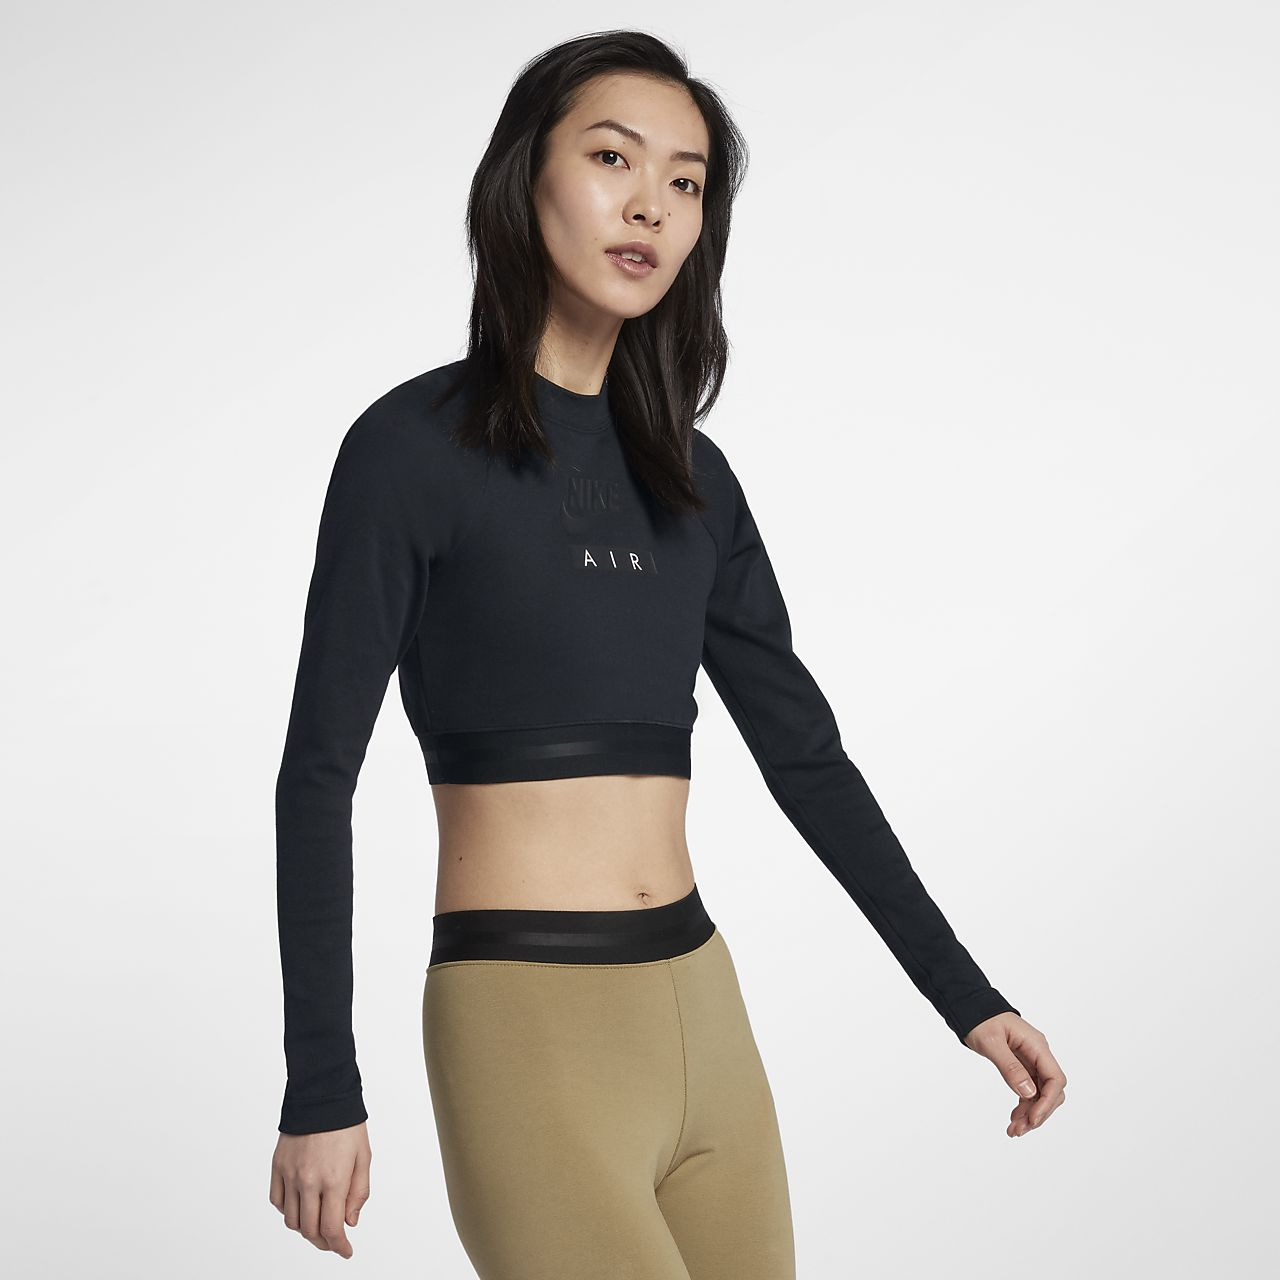 db1b3619578c4 Nike Air Women s Crop Top. Nike.com AU